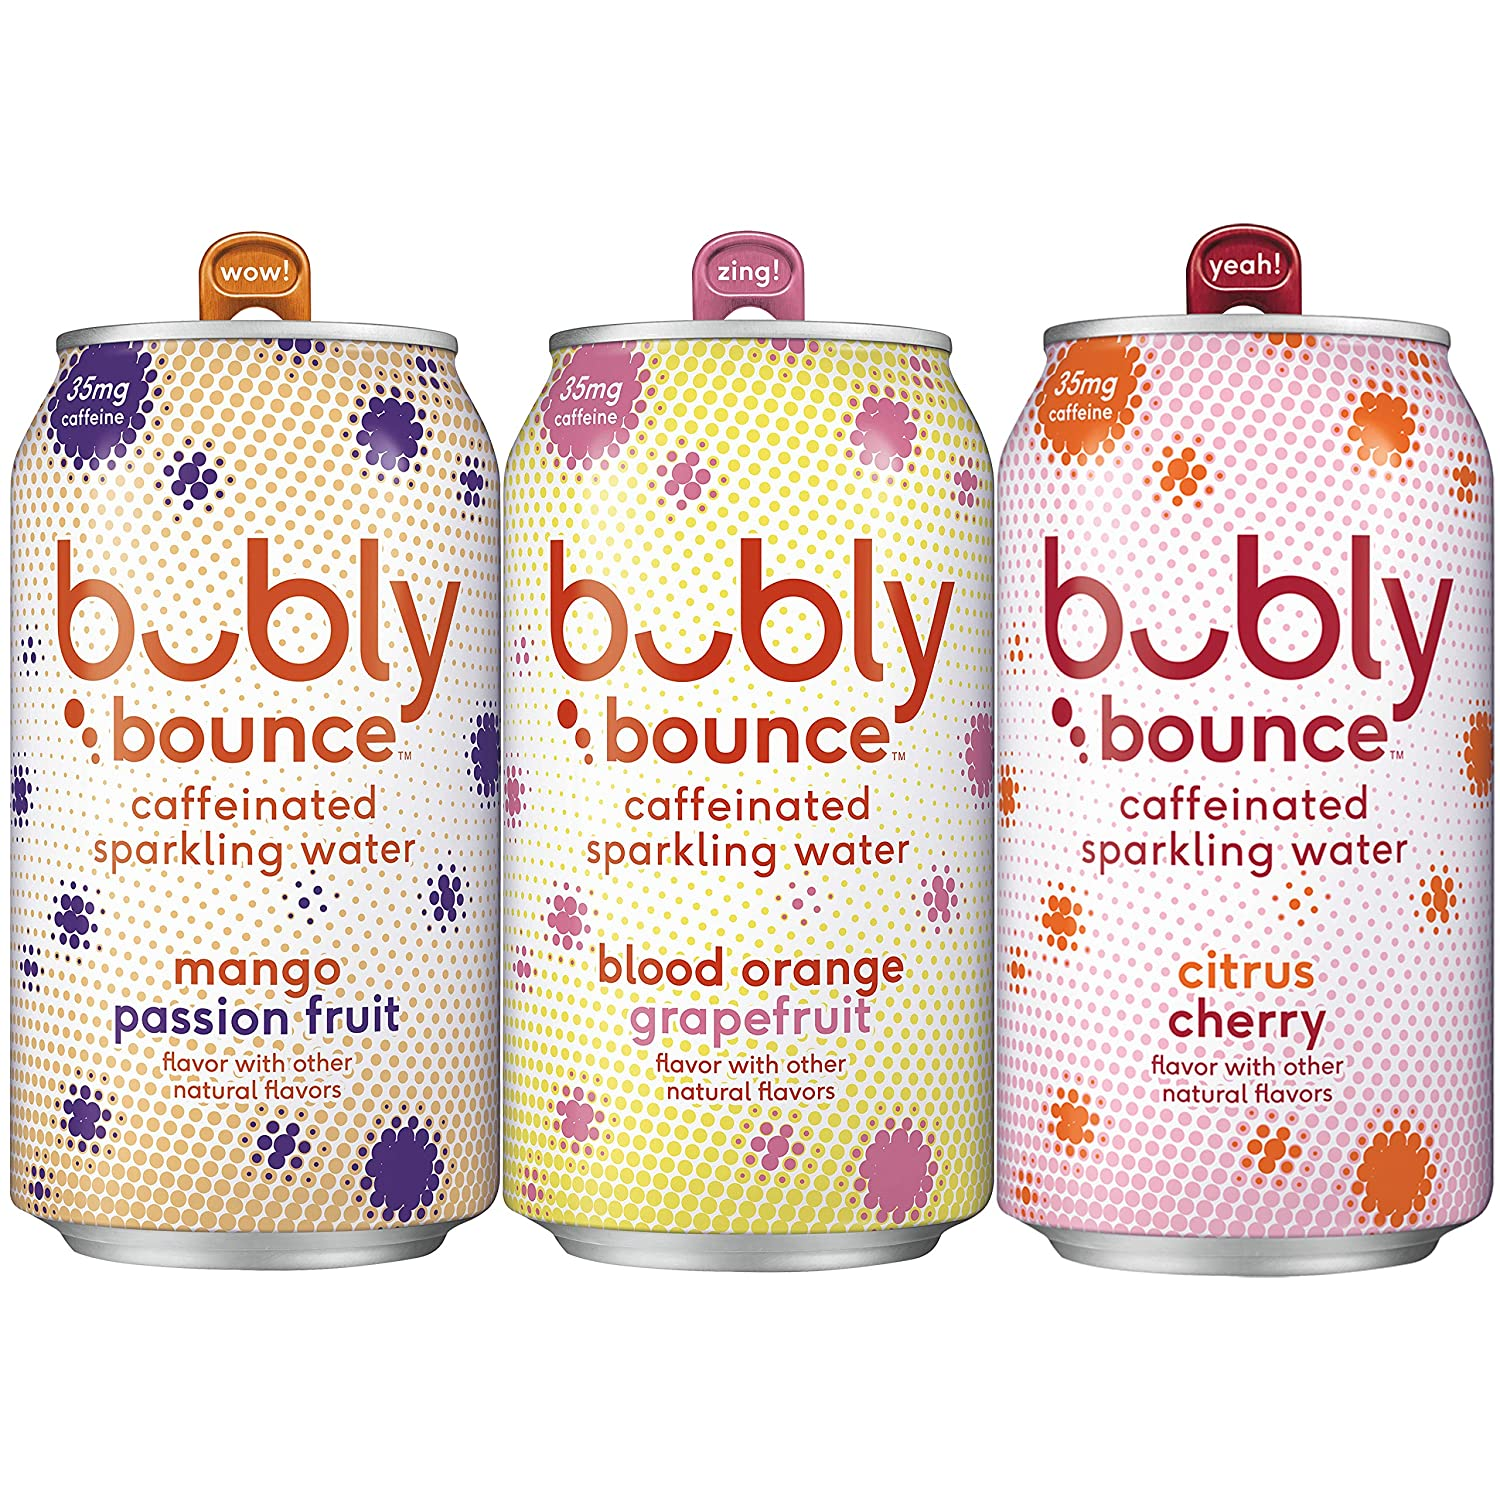 Bubly Bounce Caffeinated Sparkling Water, 3 Flavor Variety Pack, 12oz Cans, 18.0 Count